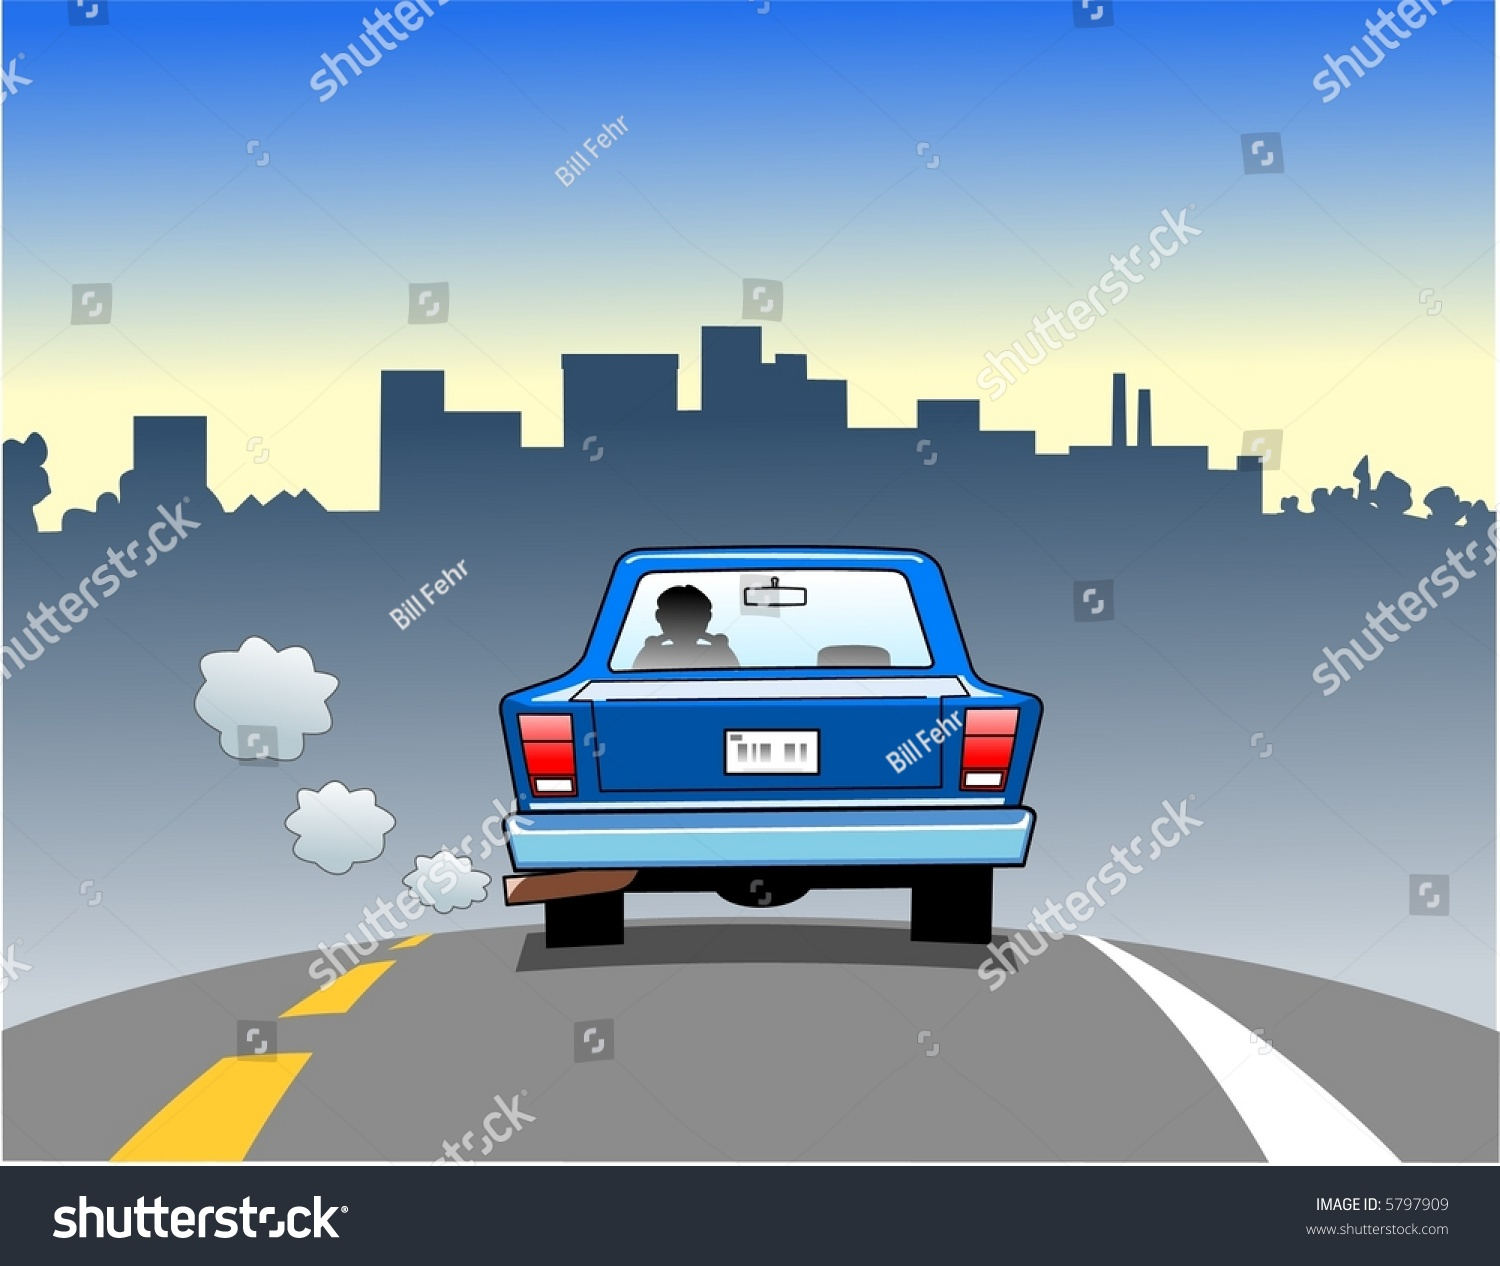 clipart car driving on road - photo #20